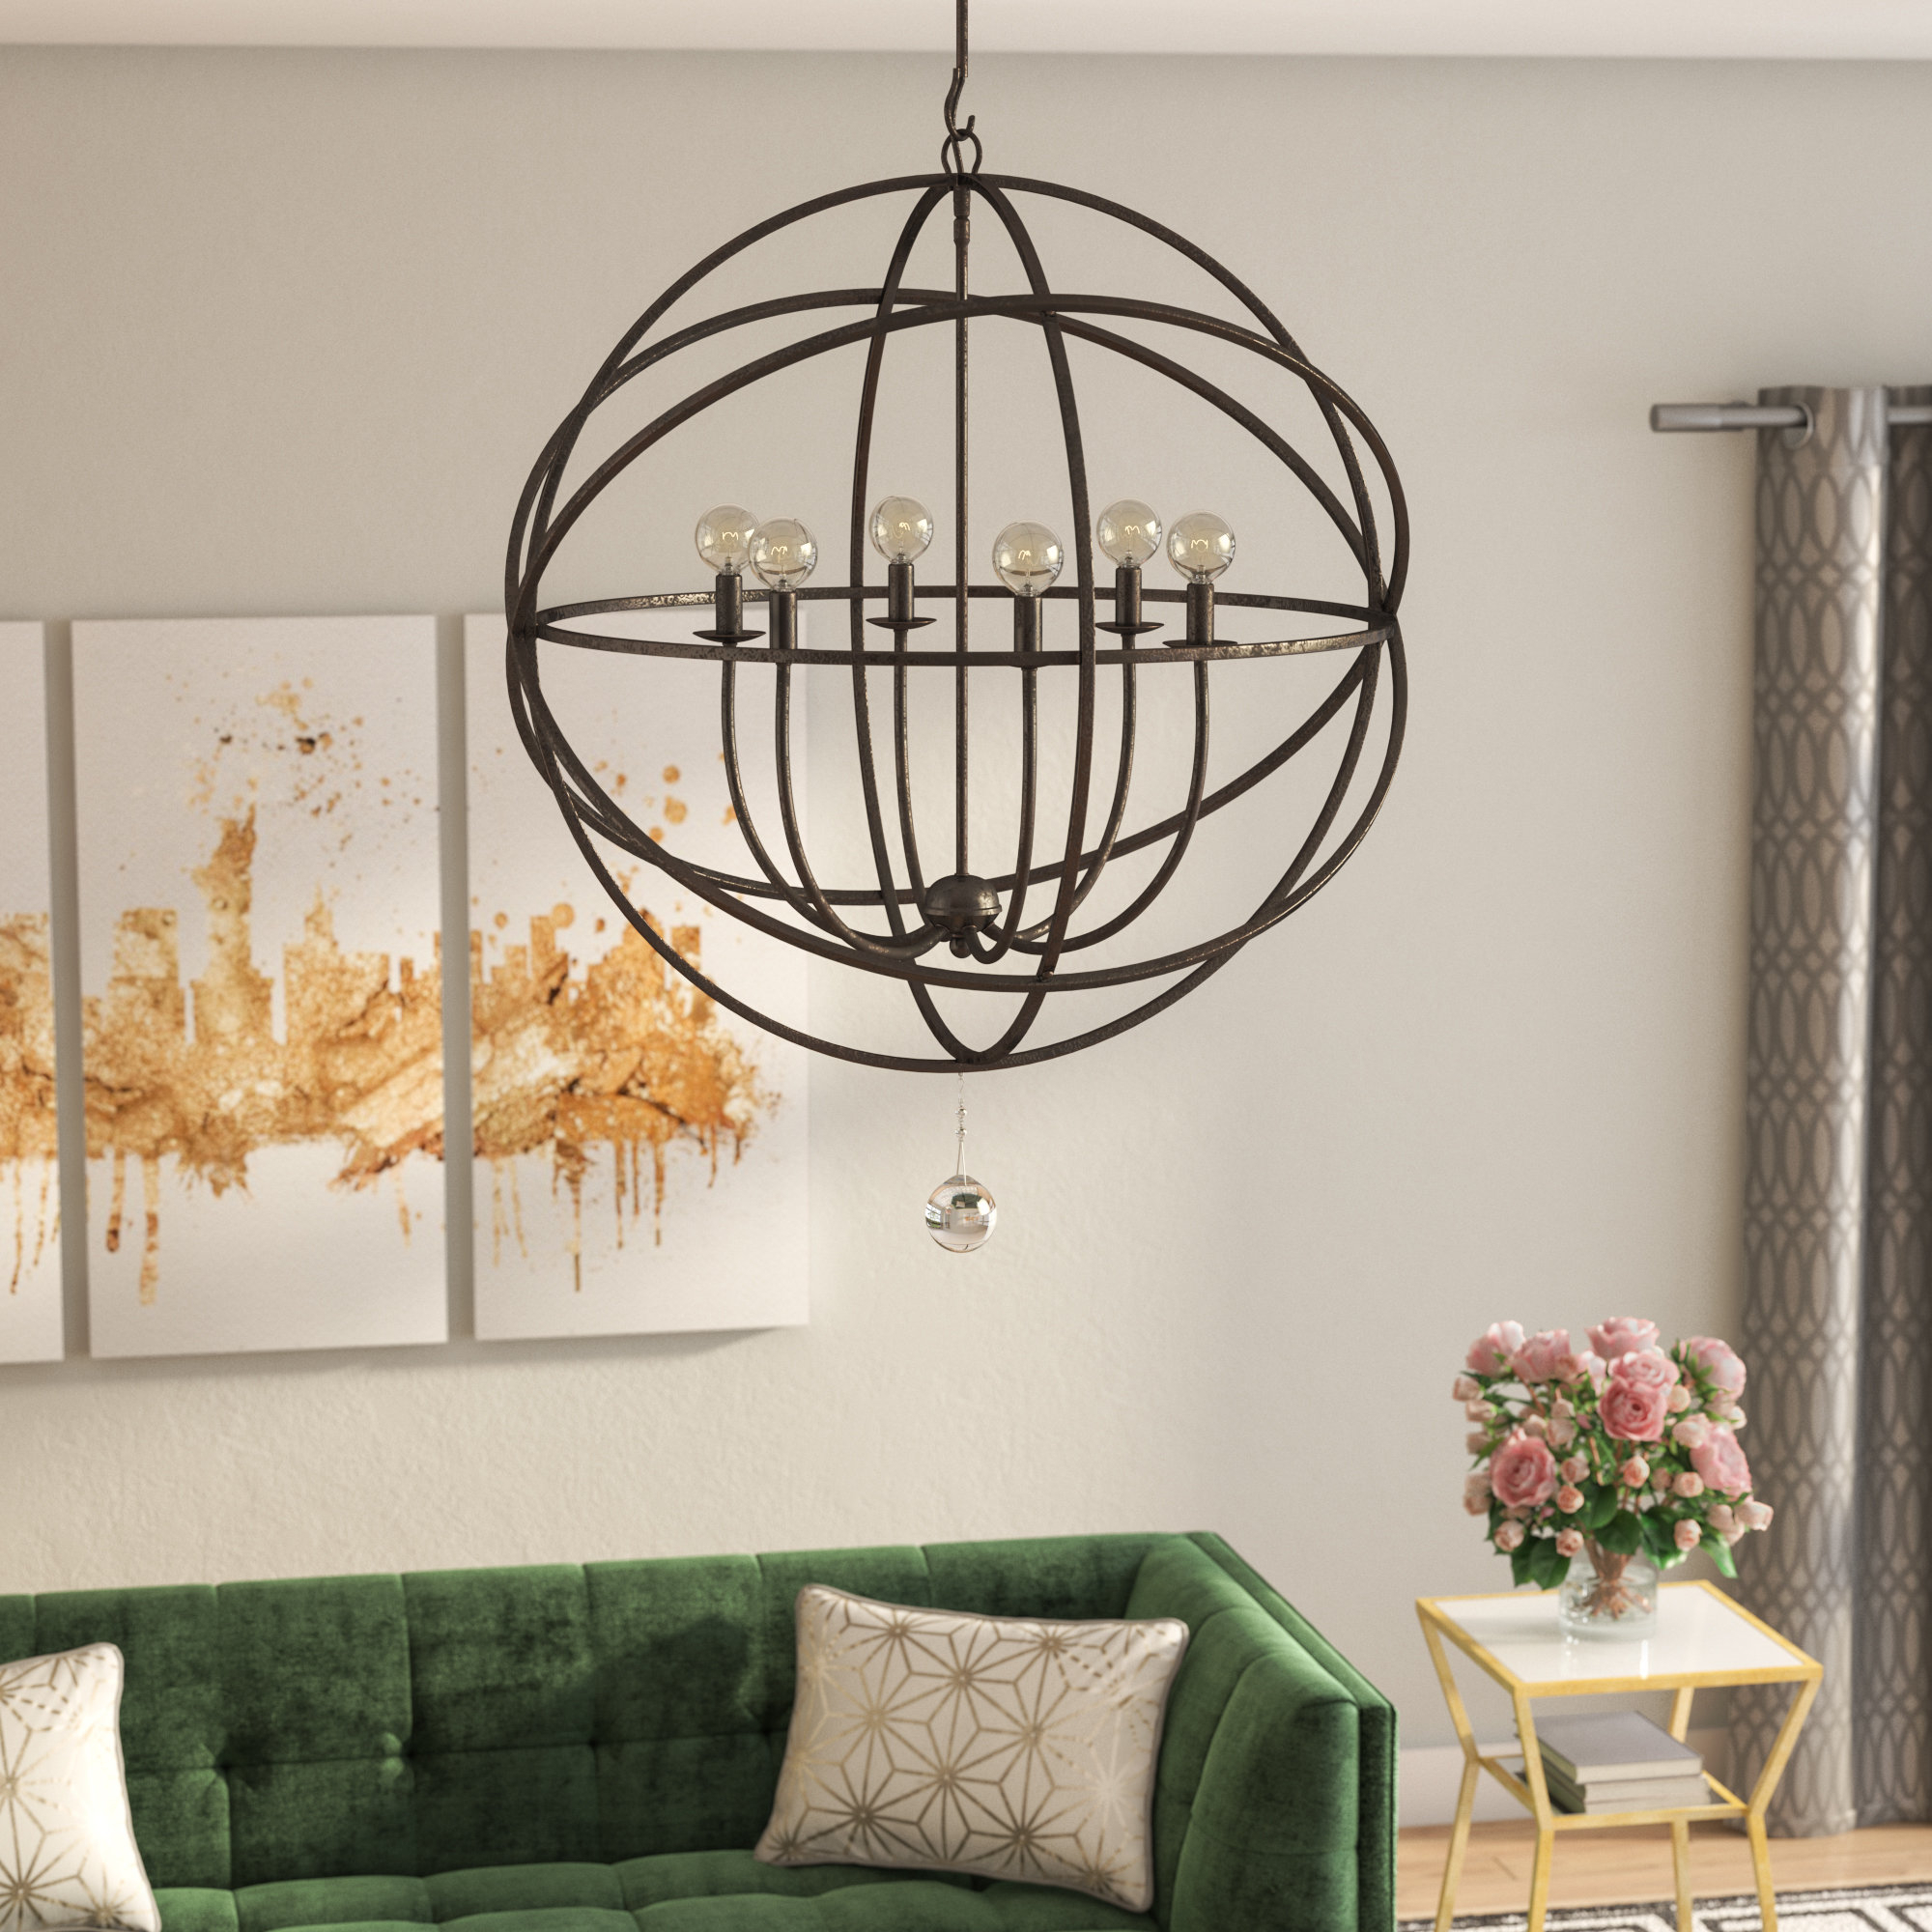 Gregoire 6 Light Globe Chandeliers Regarding 2019 Gregoire 6 Light Globe Chandelier (Gallery 5 of 20)